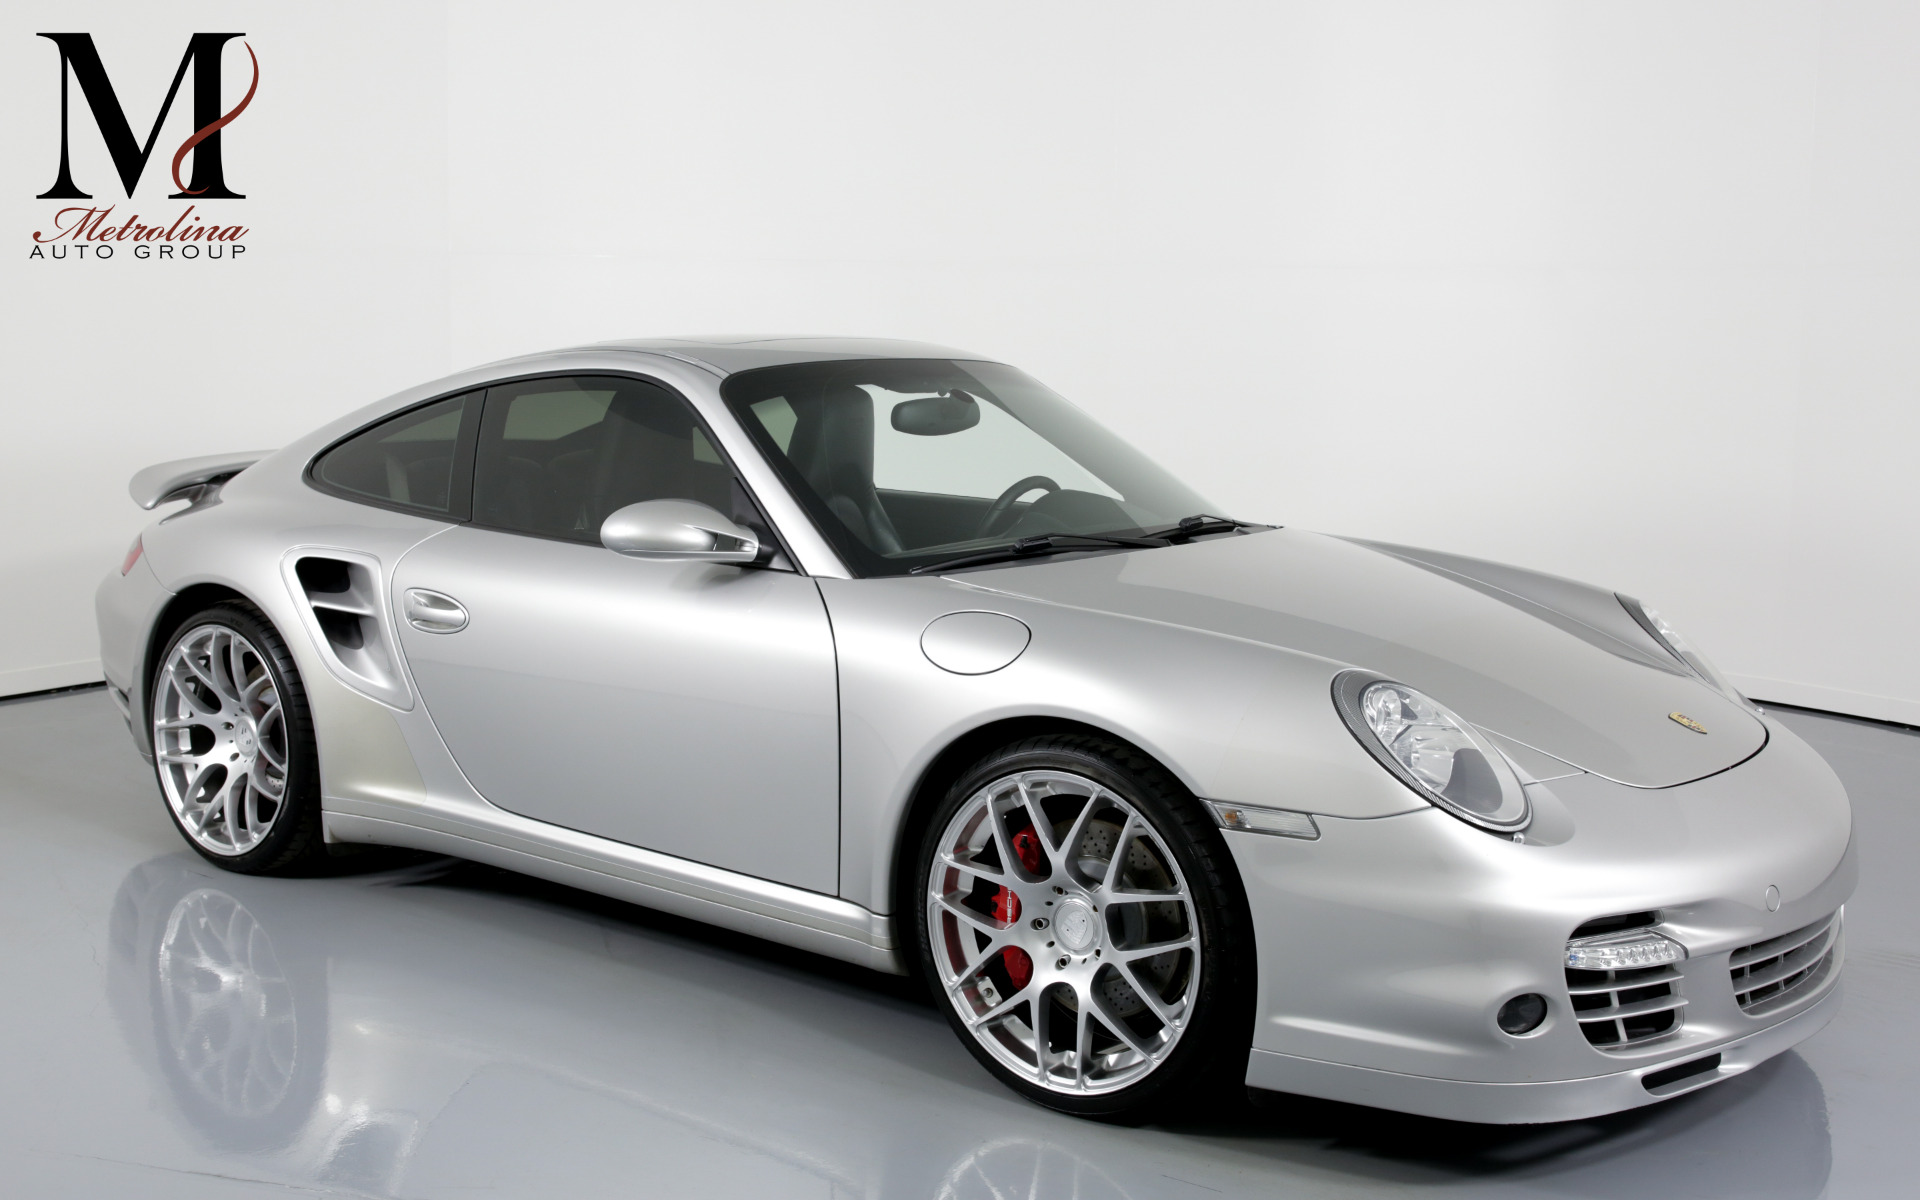 Used 2007 Porsche 911 Turbo for sale $74,996 at Metrolina Auto Group in Charlotte NC 28217 - 1